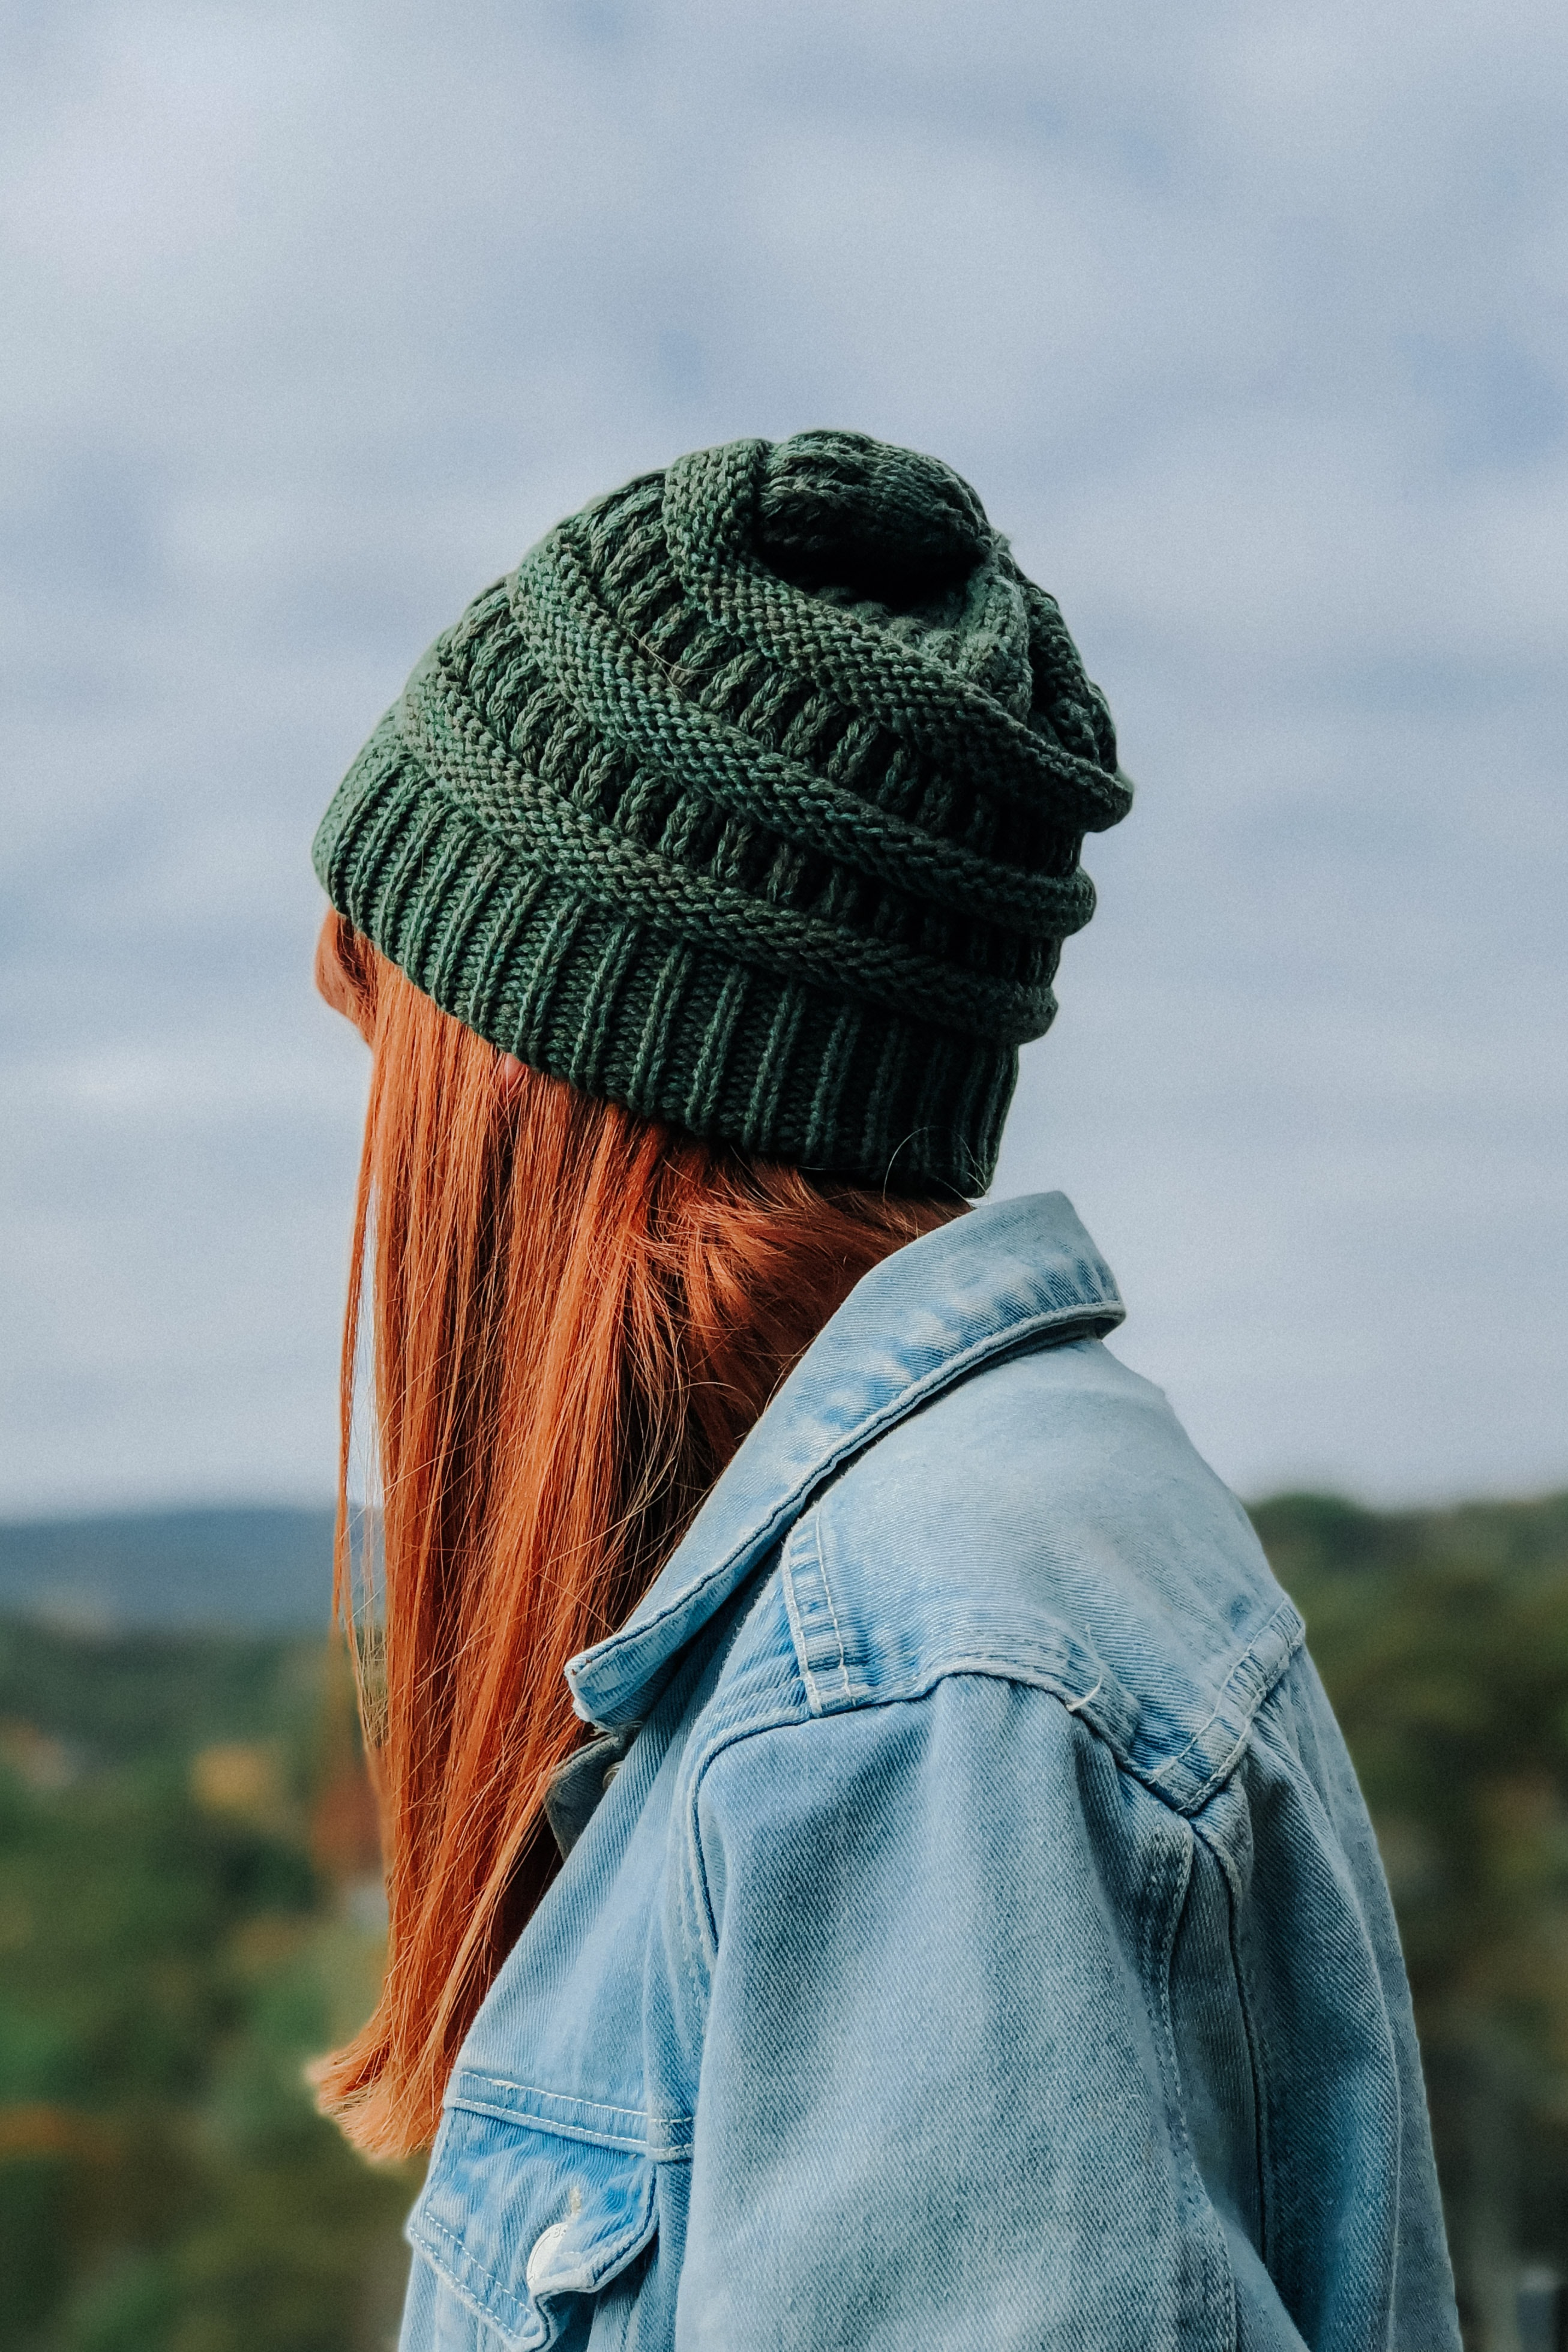 woman wearing green knit cap and blue denim jacket